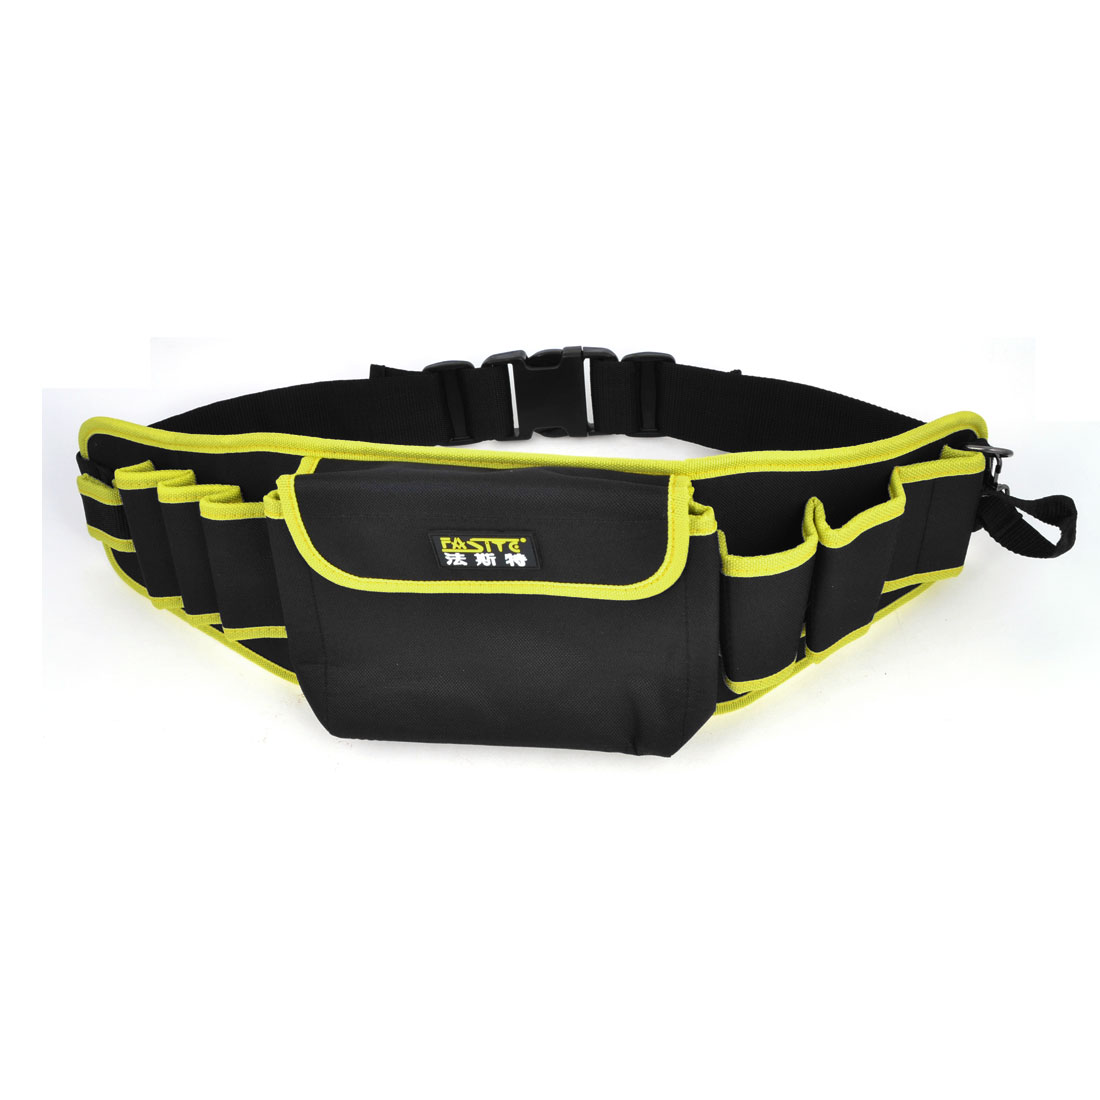 Black Yellow Canvas Pliers Scissors Organizer Tool Holder Waist Bag